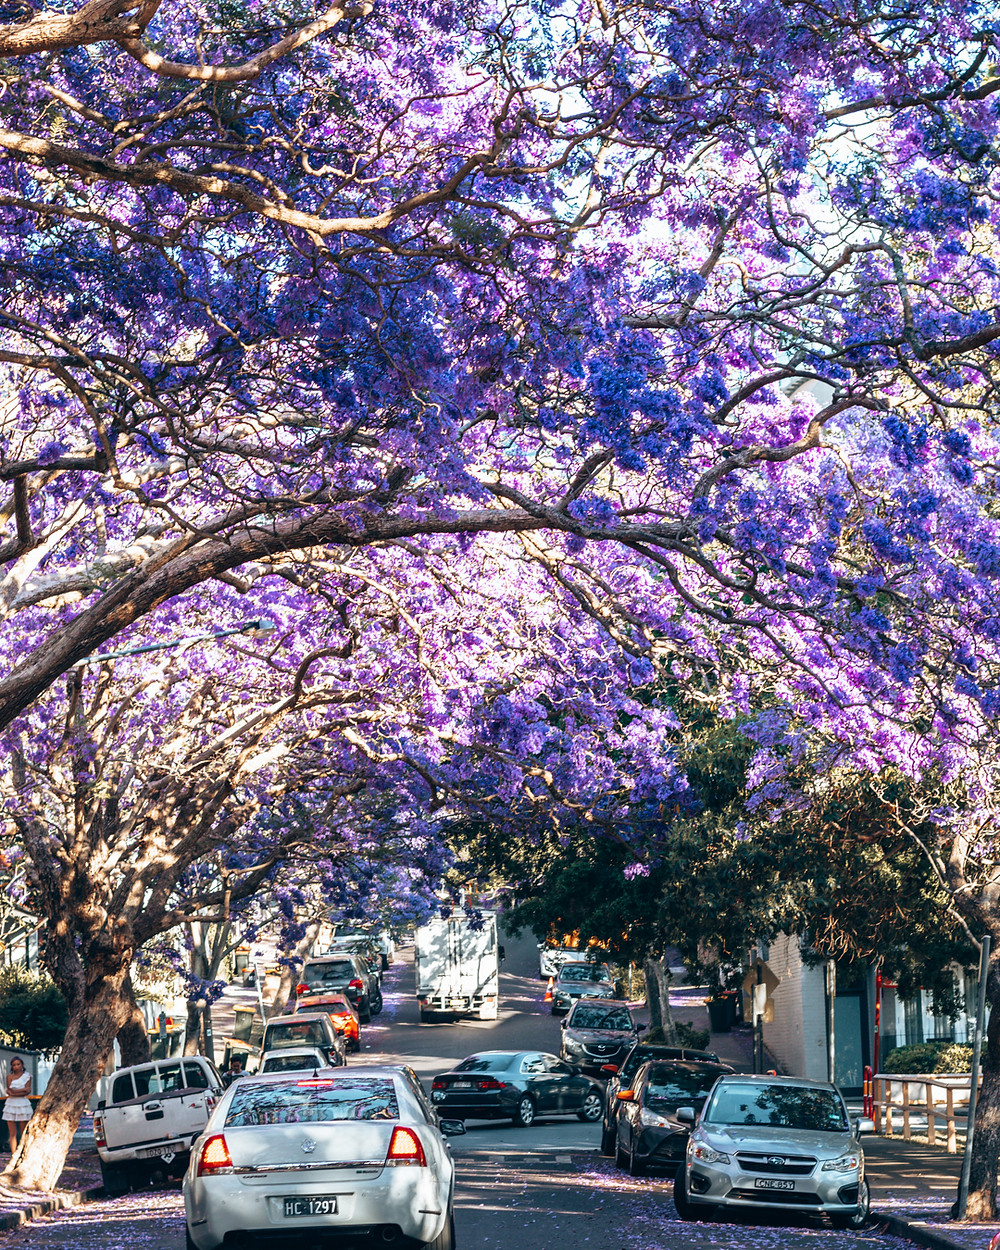 Jacaranda trees in bloom in Kirribilli Sydney